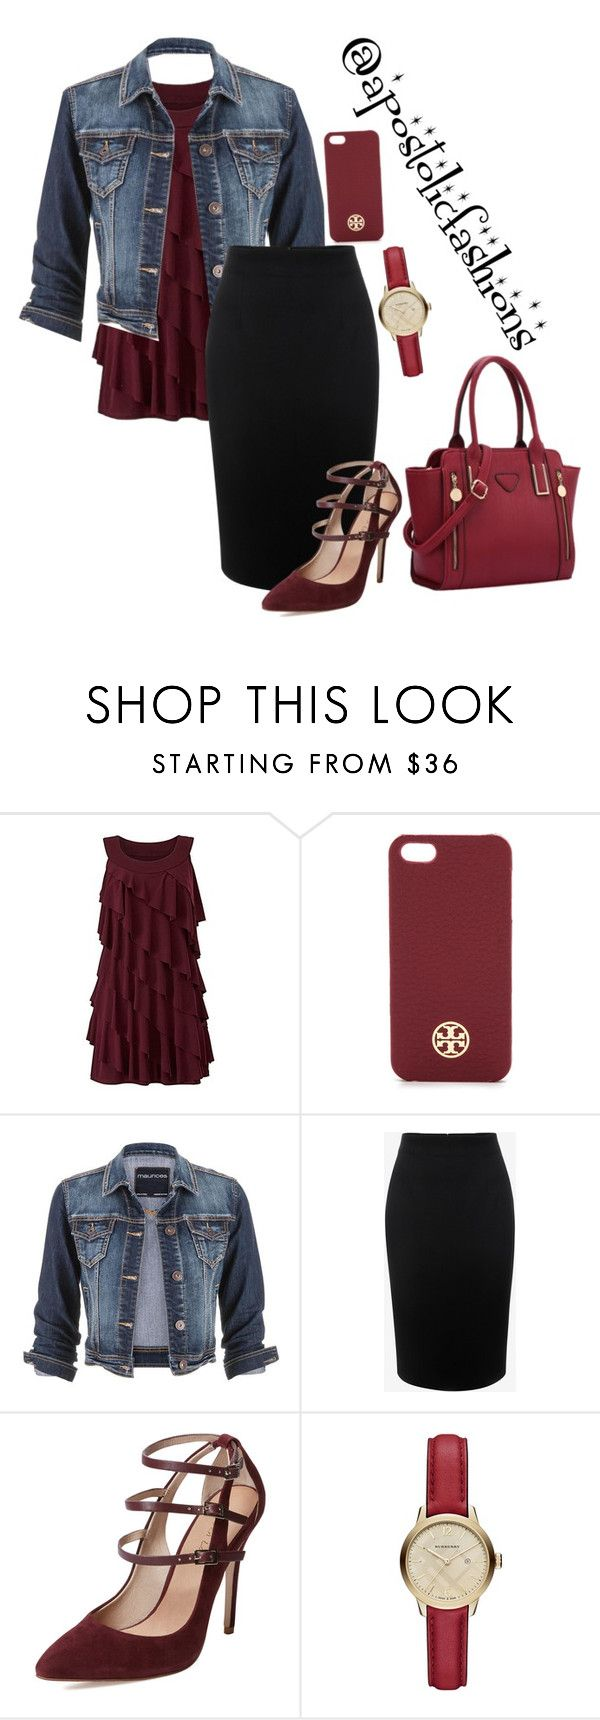 """""""Apostolic Fashions #1421"""" by apostolicfashions ❤ liked on Polyvore featuring Tory Burch, maurices, Alexander McQueen, Maiden Lane, Burberry, modestlykay and modestlywhit"""